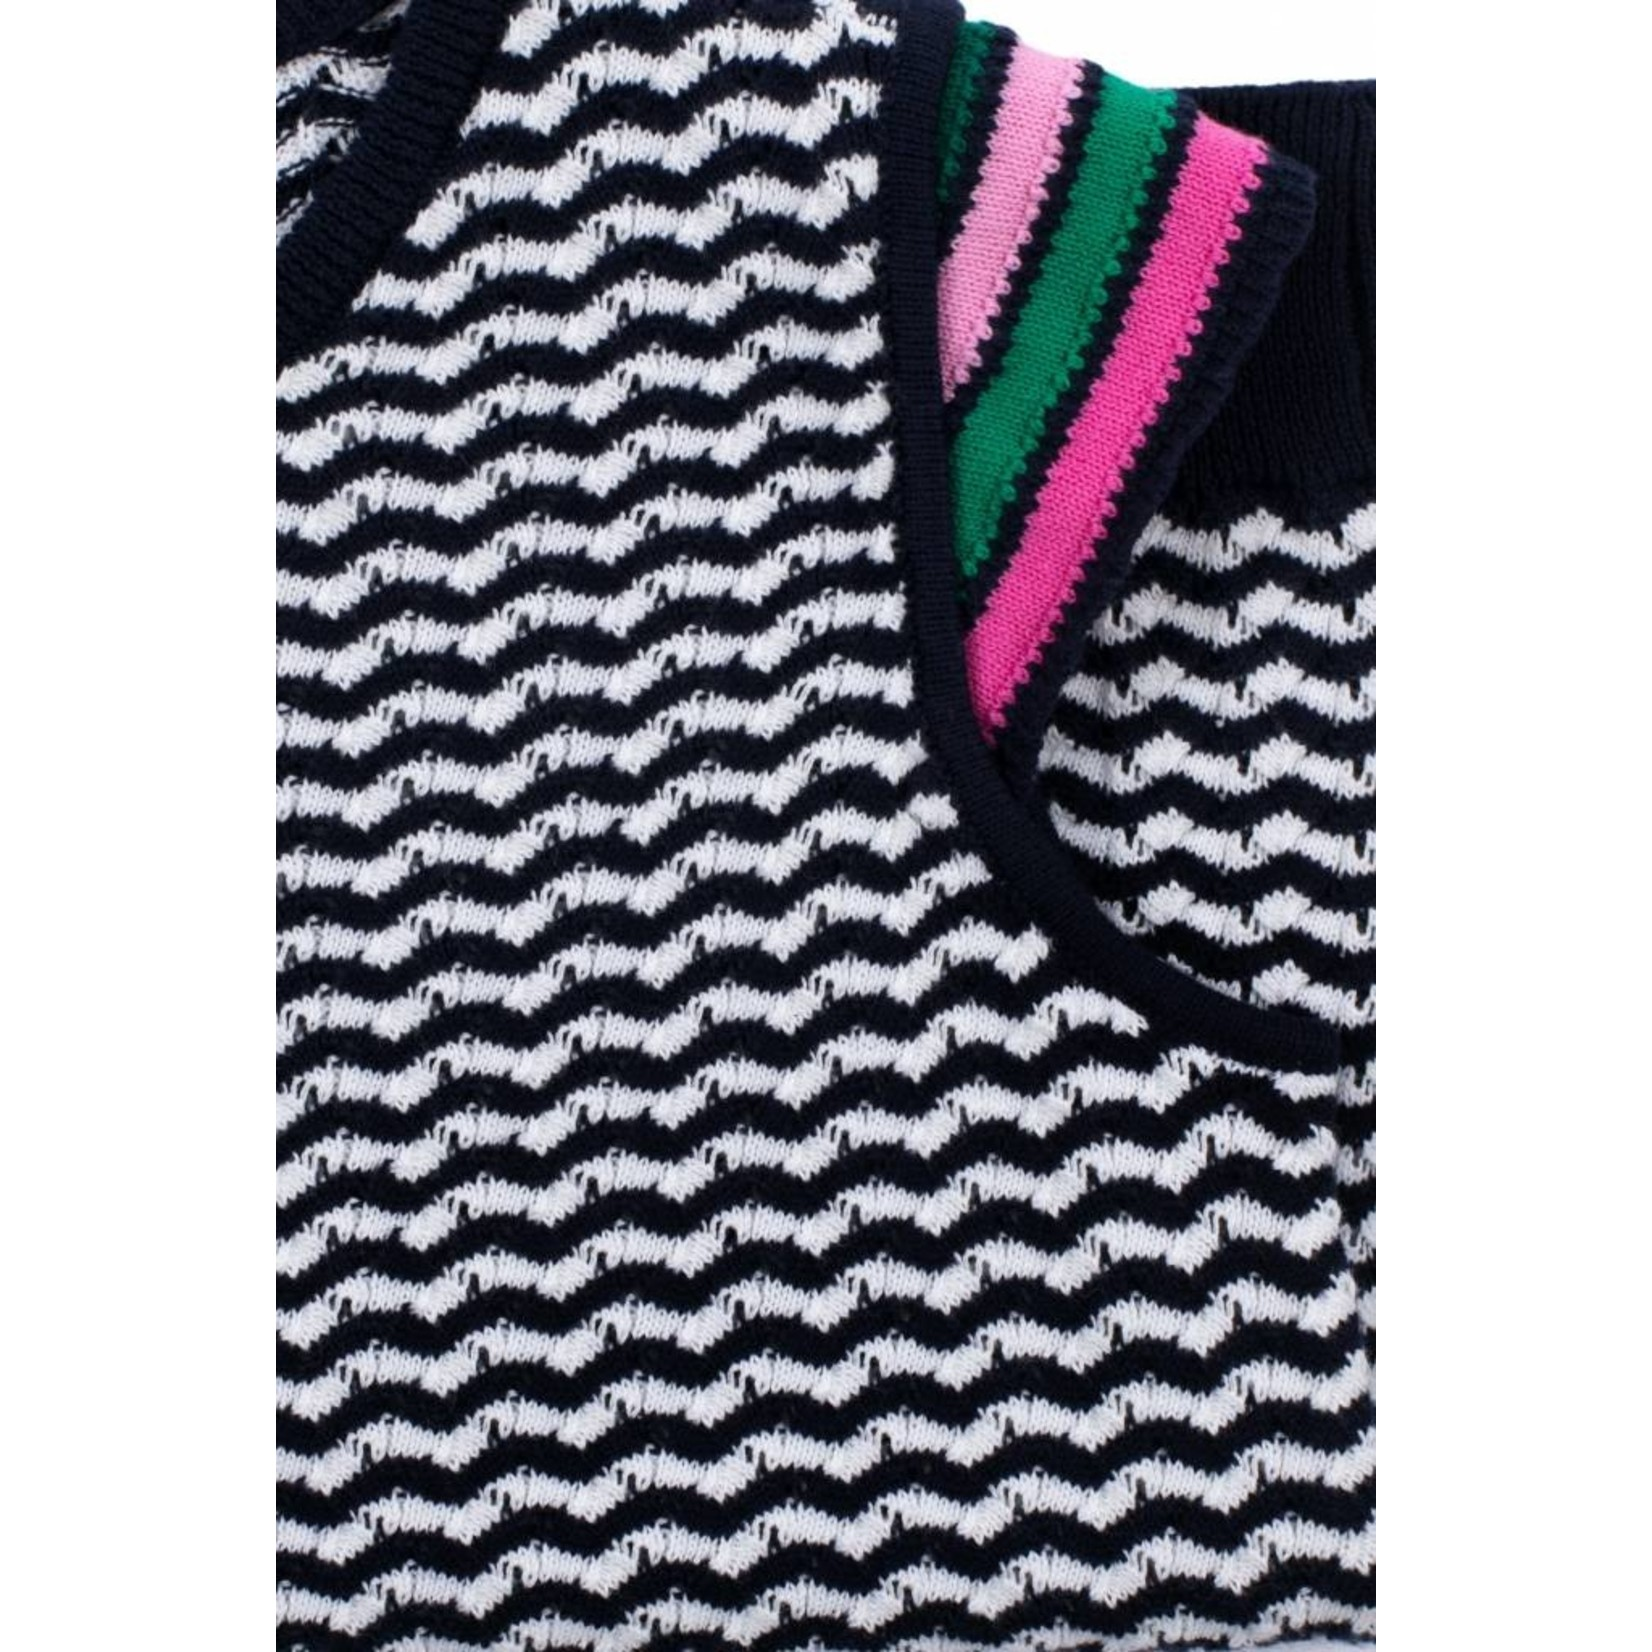 Looxs pullover maat 128